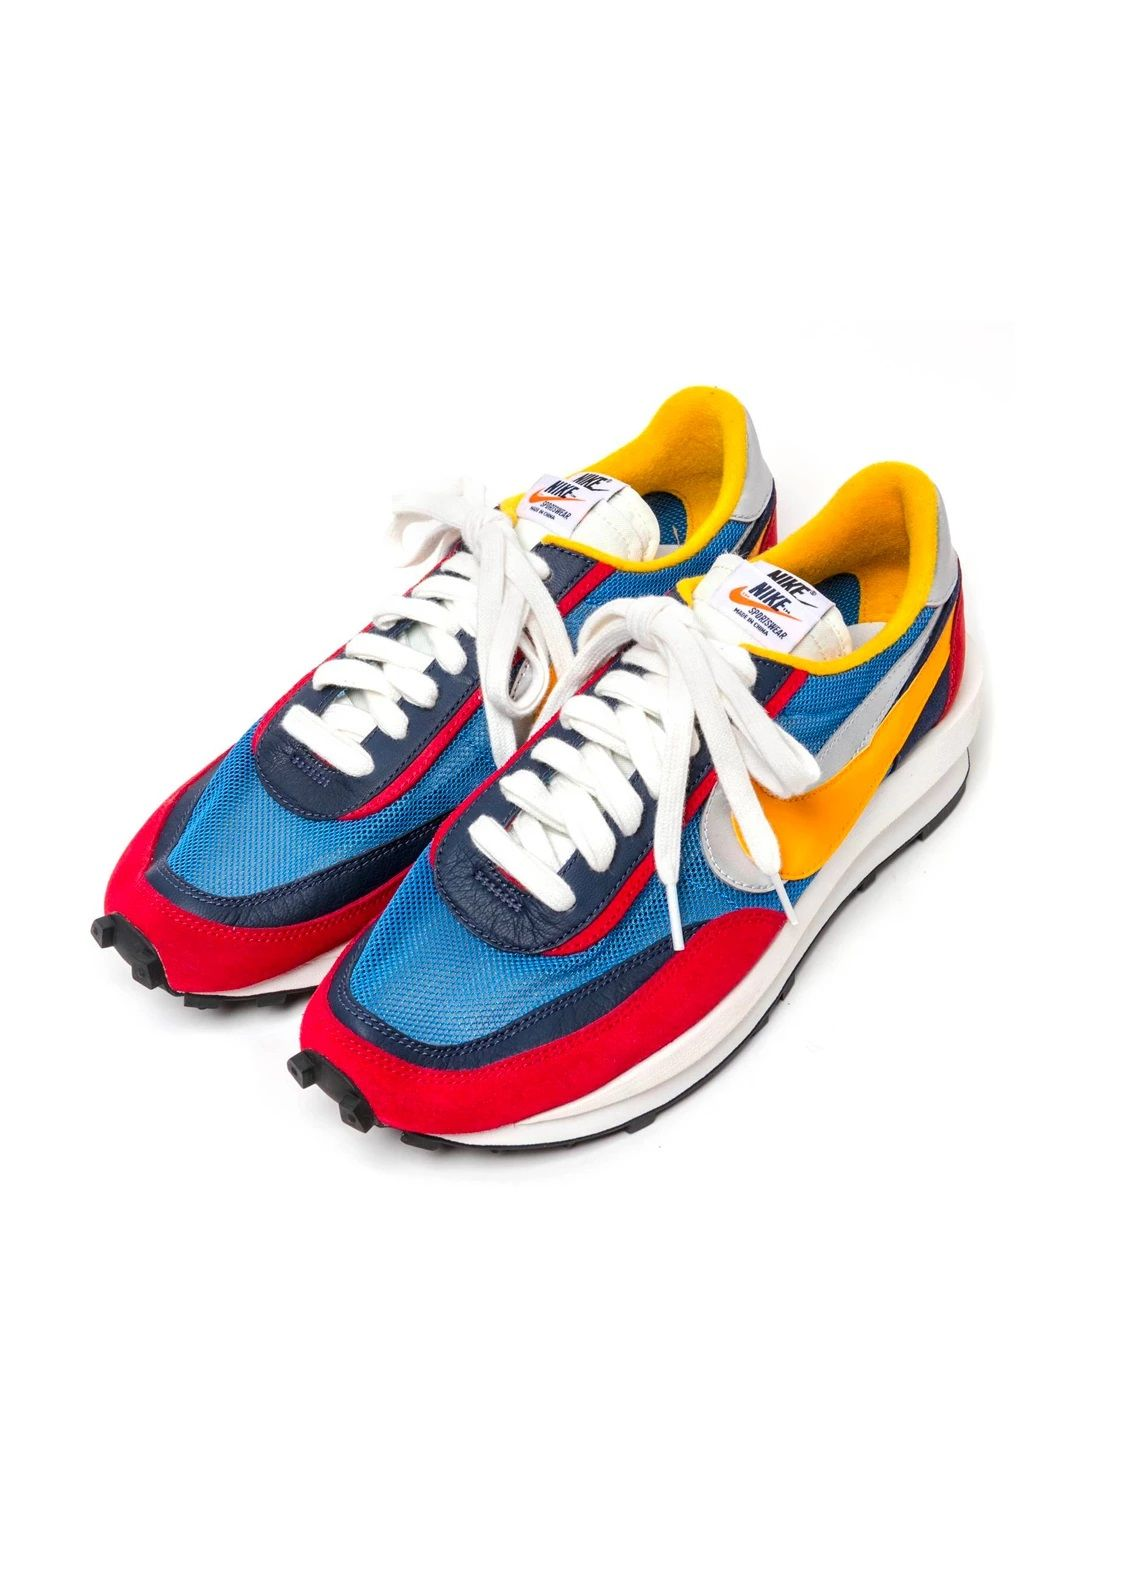 watch 7a218 829bd sacai x Nike LDV Waffle Daybreak | Sports Shoes in 2019 | Sports ...